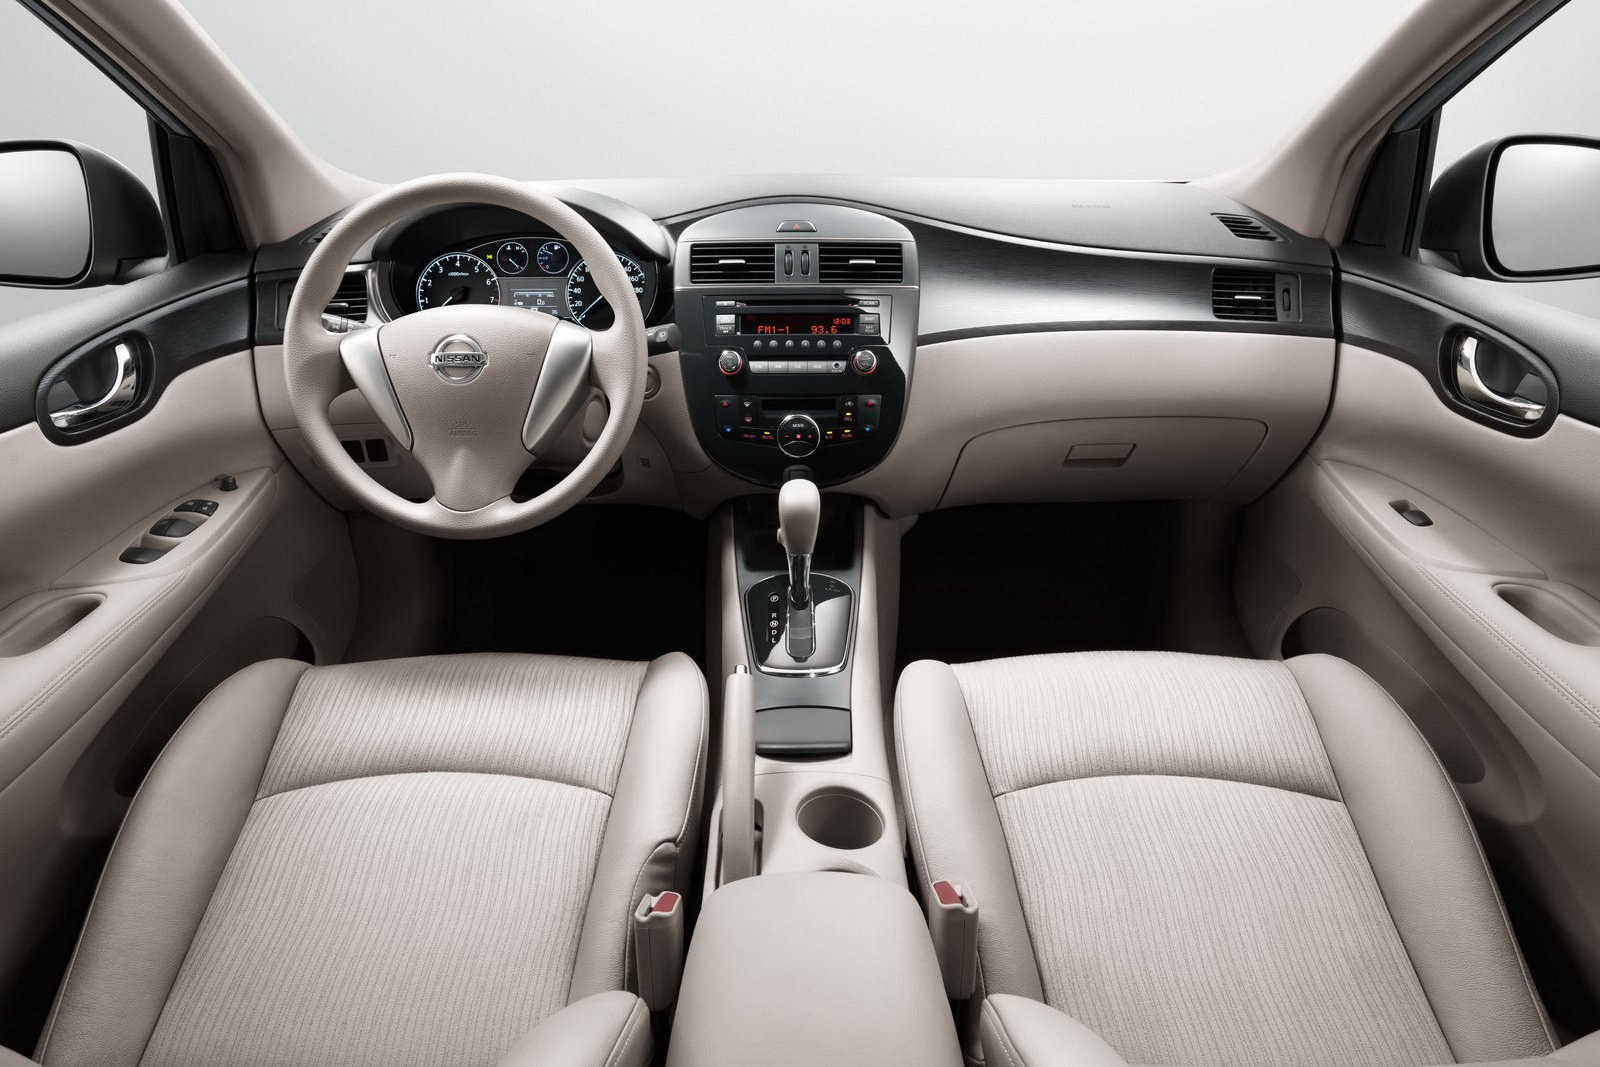 Pictures of nissan tiida 2013